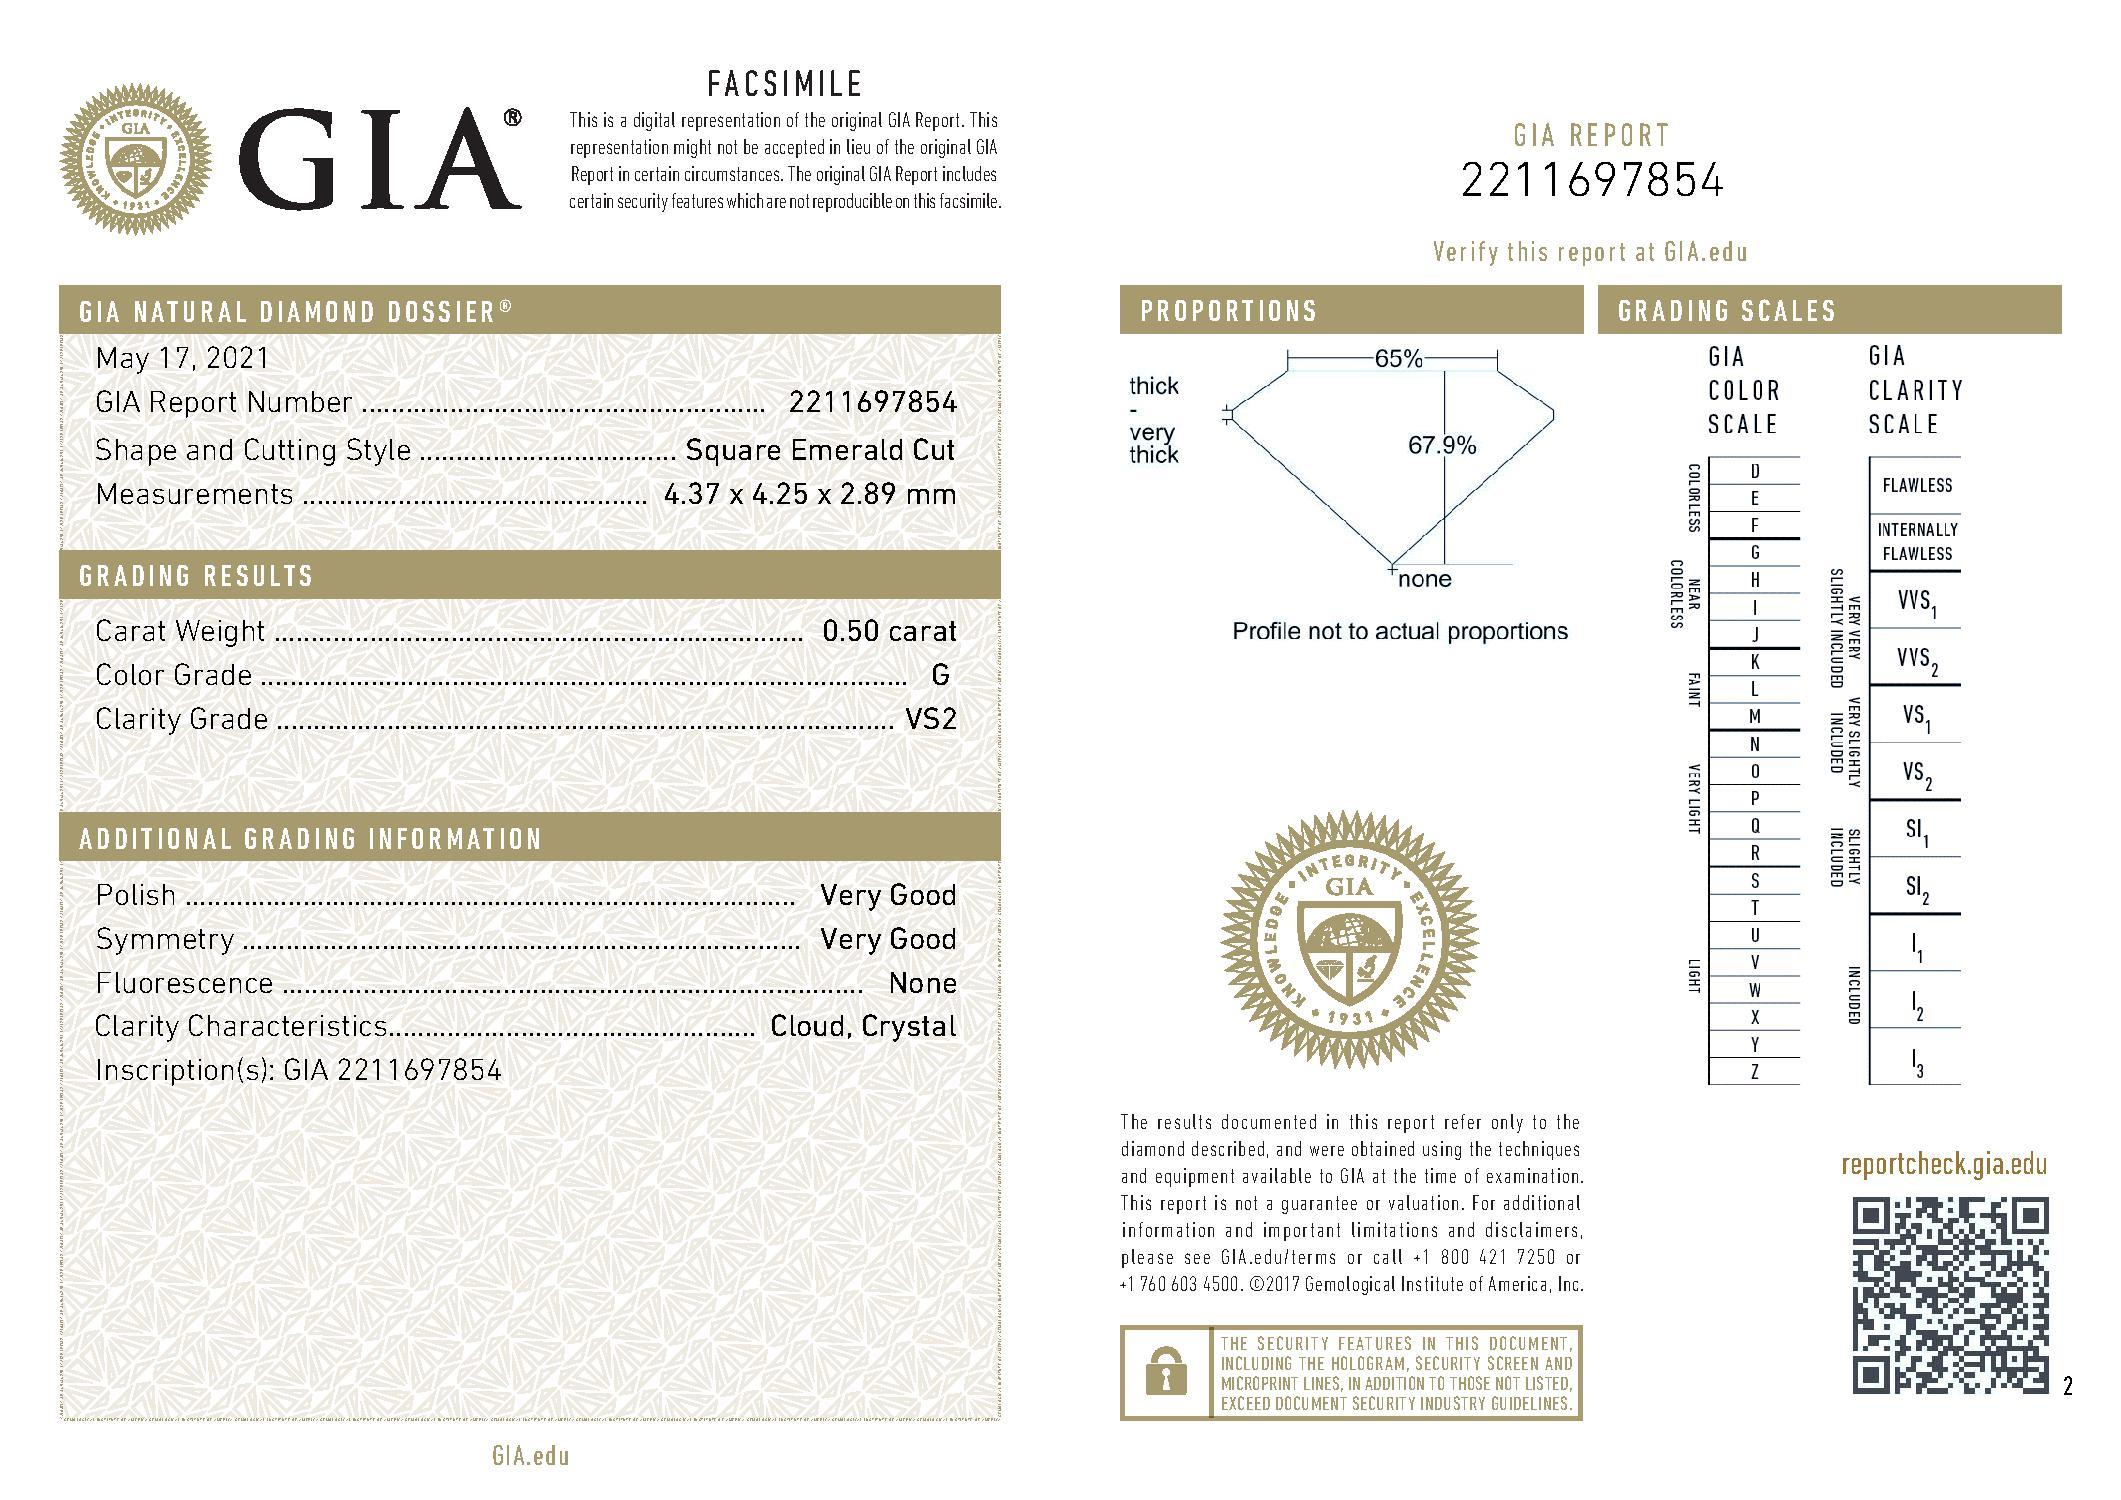 This is a 0.50 carat asscher shape, G color, VS2 clarity natural diamond accompanied by a GIA grading report.